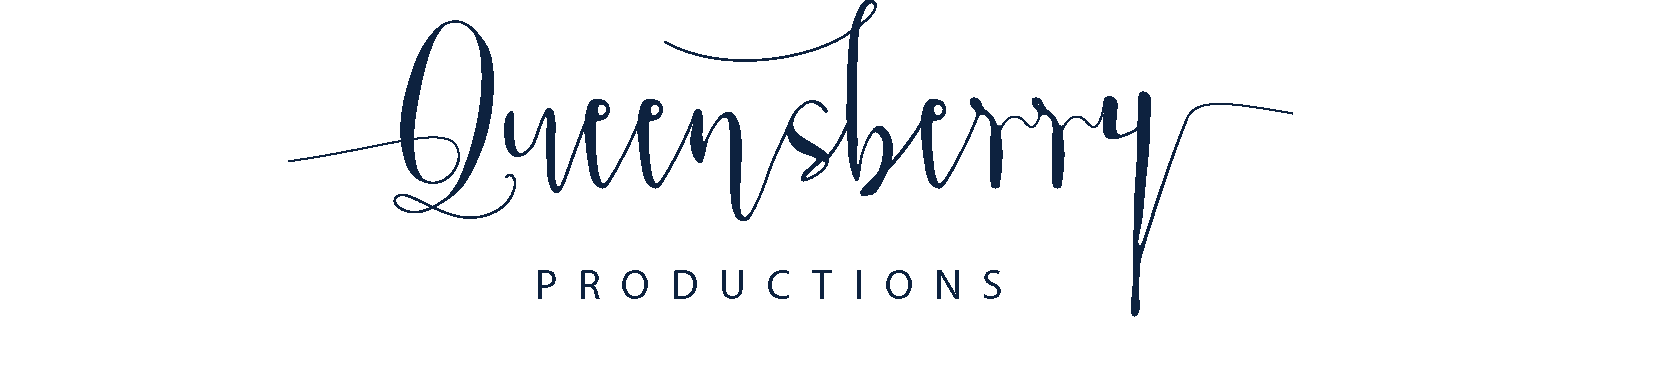 Queensberry Productions